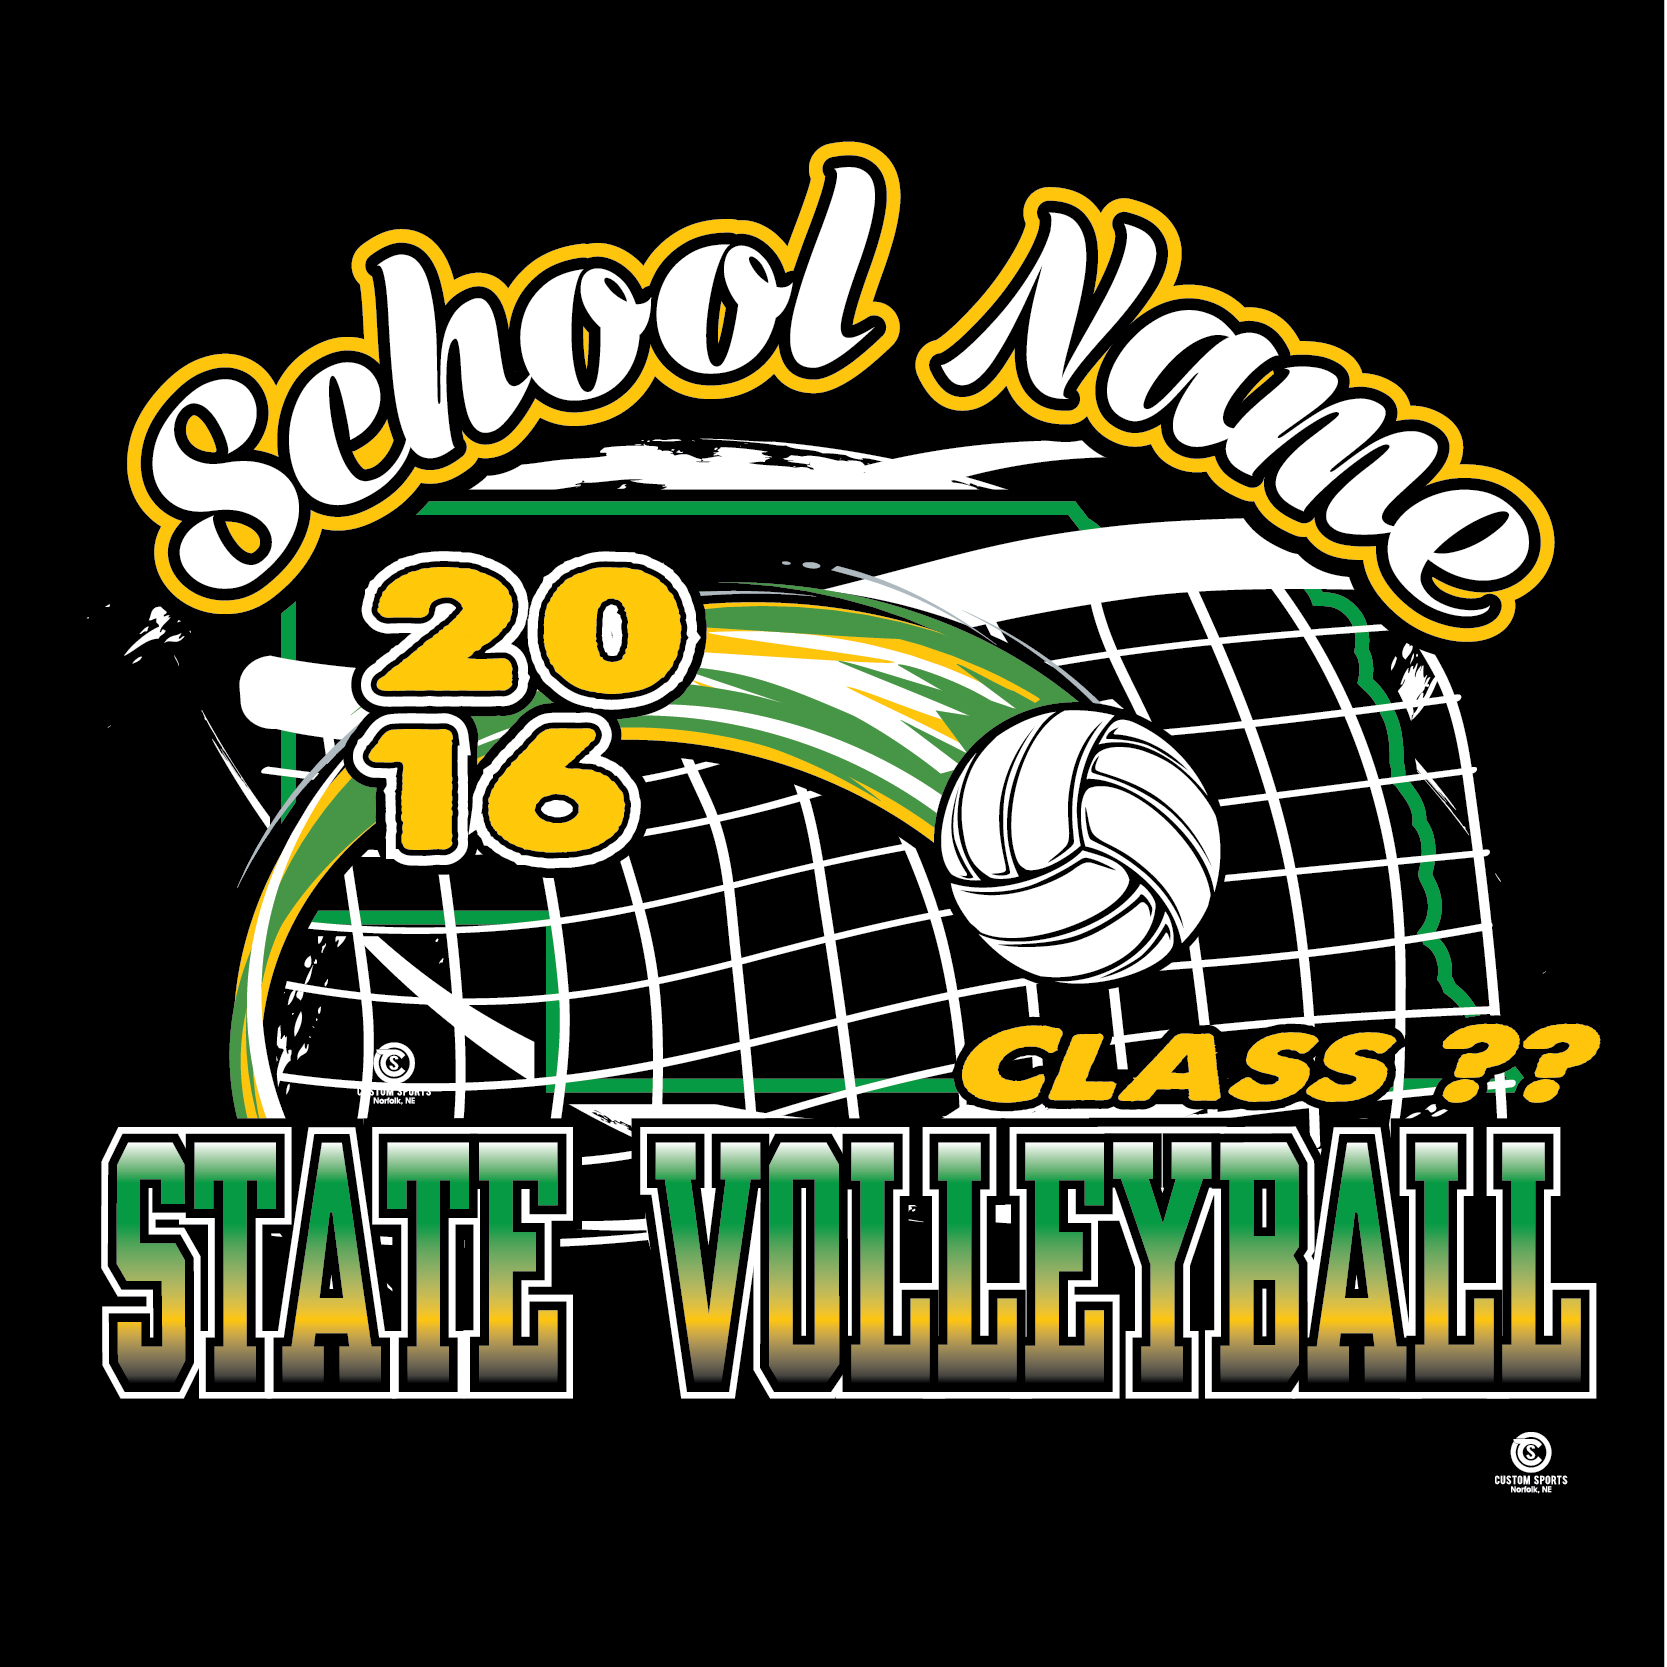 T shirt design volleyball - State Volleyball Web 09